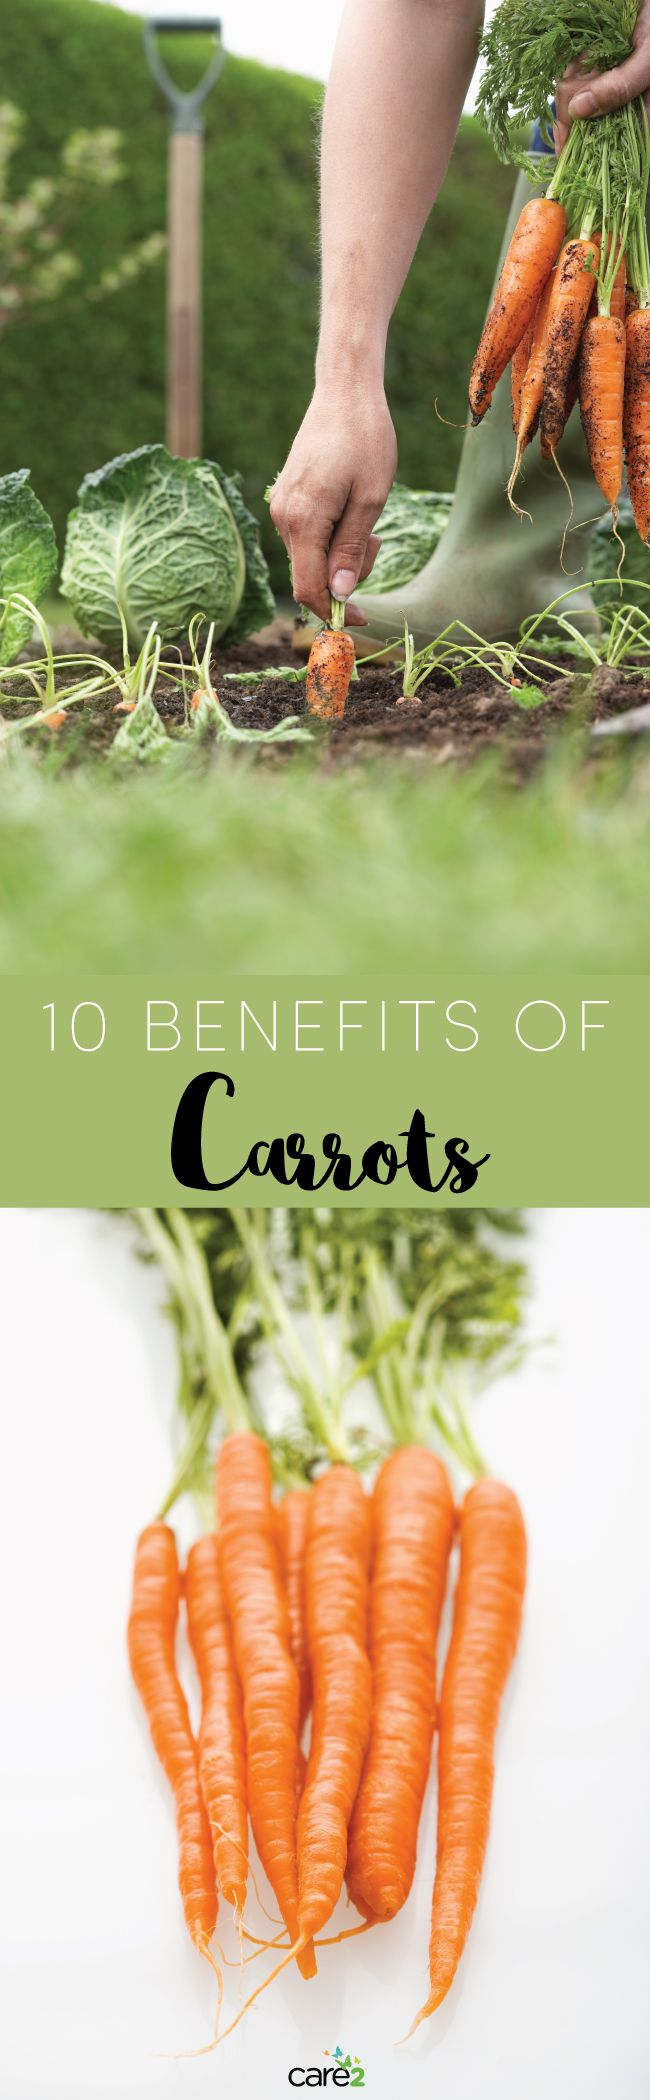 10 Benefits of Carrots: The Crunchy Powerfood - http://nifyhealth.com/10-benefits-of-carrots-the-crunchy-powerfood/